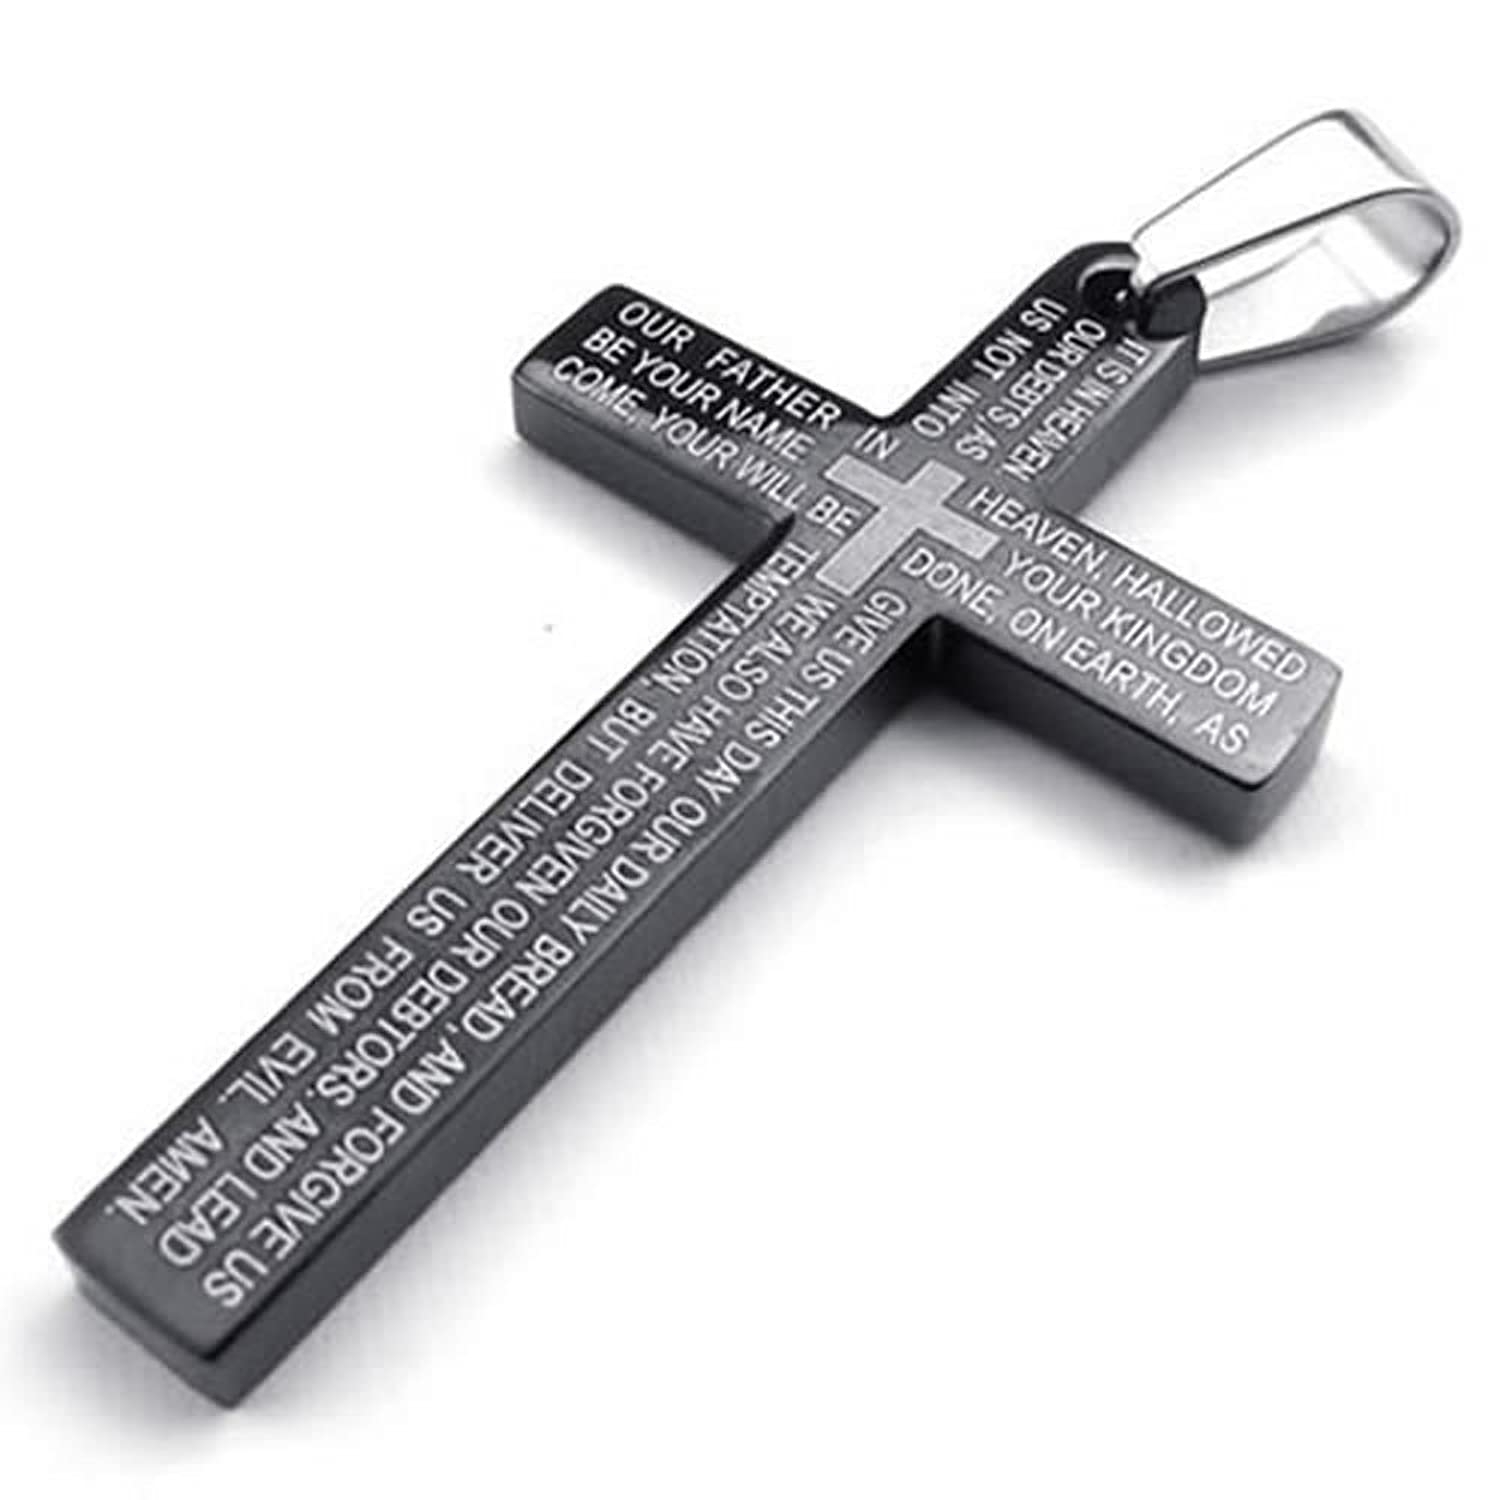 KONOV Stainless Steel Mens Lords Prayer Cross Pendant Necklace, Black, 24 inch Chain